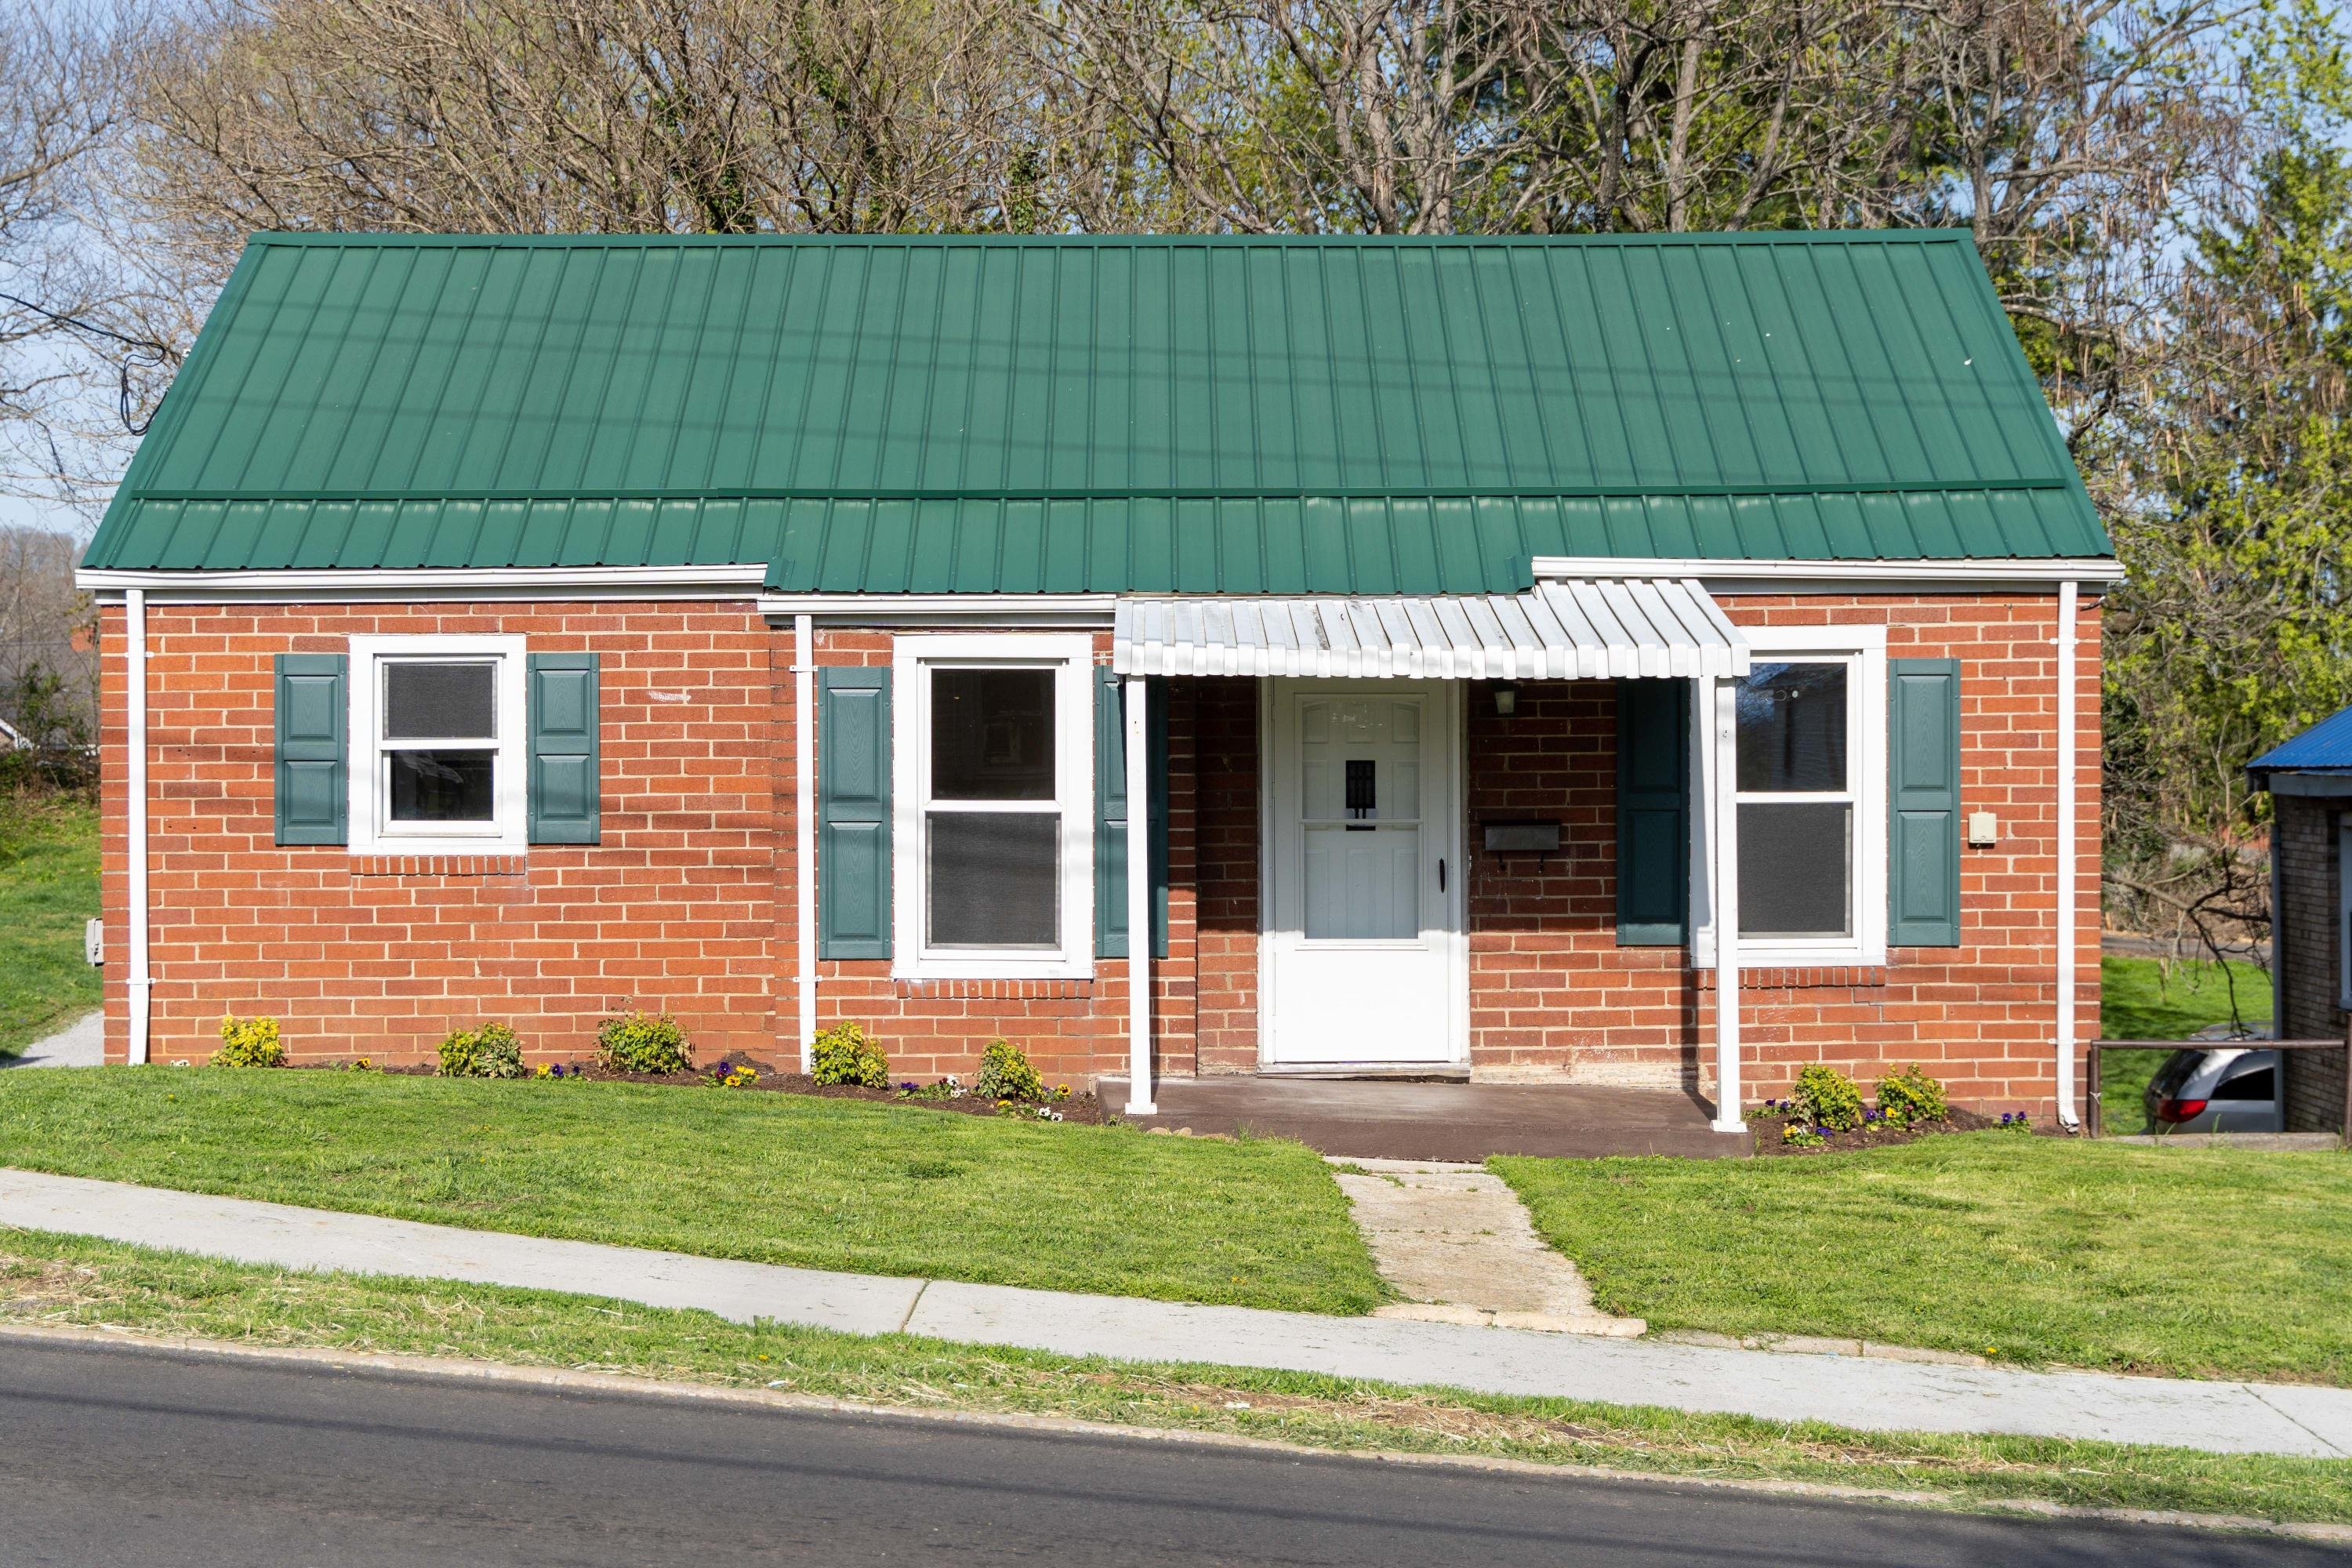 913 Fairview Avenue, Kingsport, Tennessee 37660, 4 Bedrooms Bedrooms, ,2 BathroomsBathrooms,Single Family,For Sale,913 Fairview Avenue,9920455